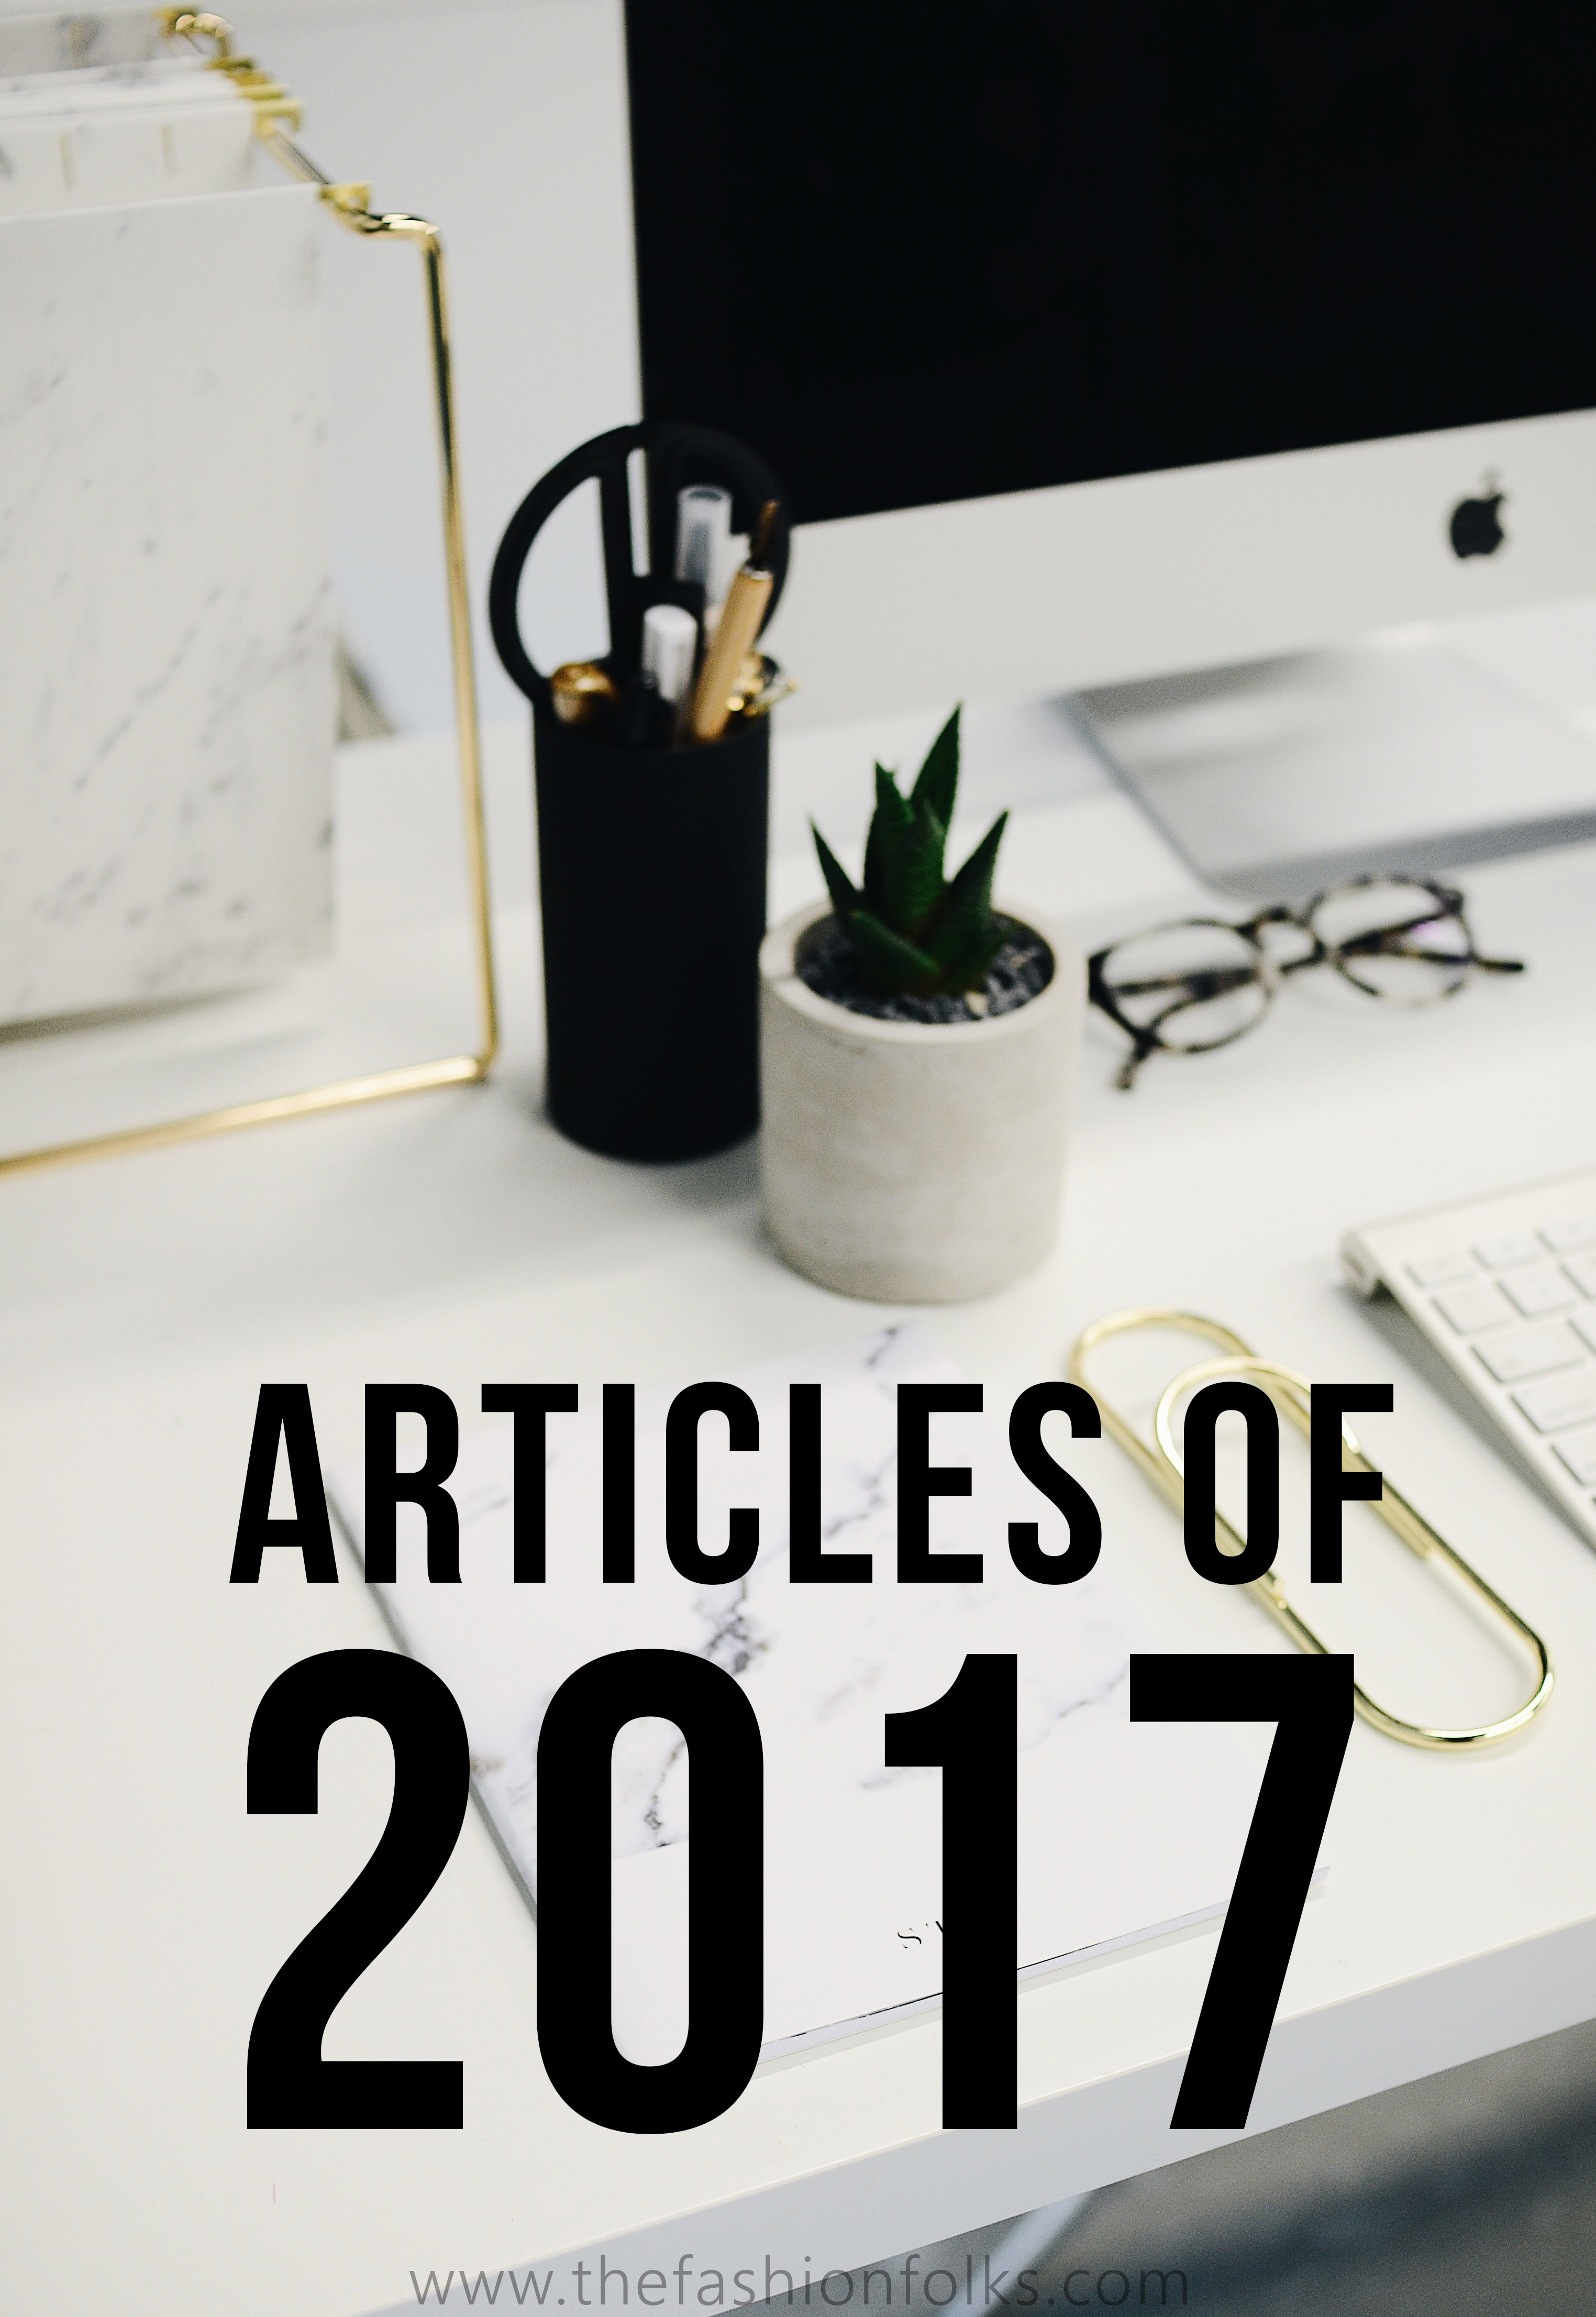 Summary: Articles of 2017